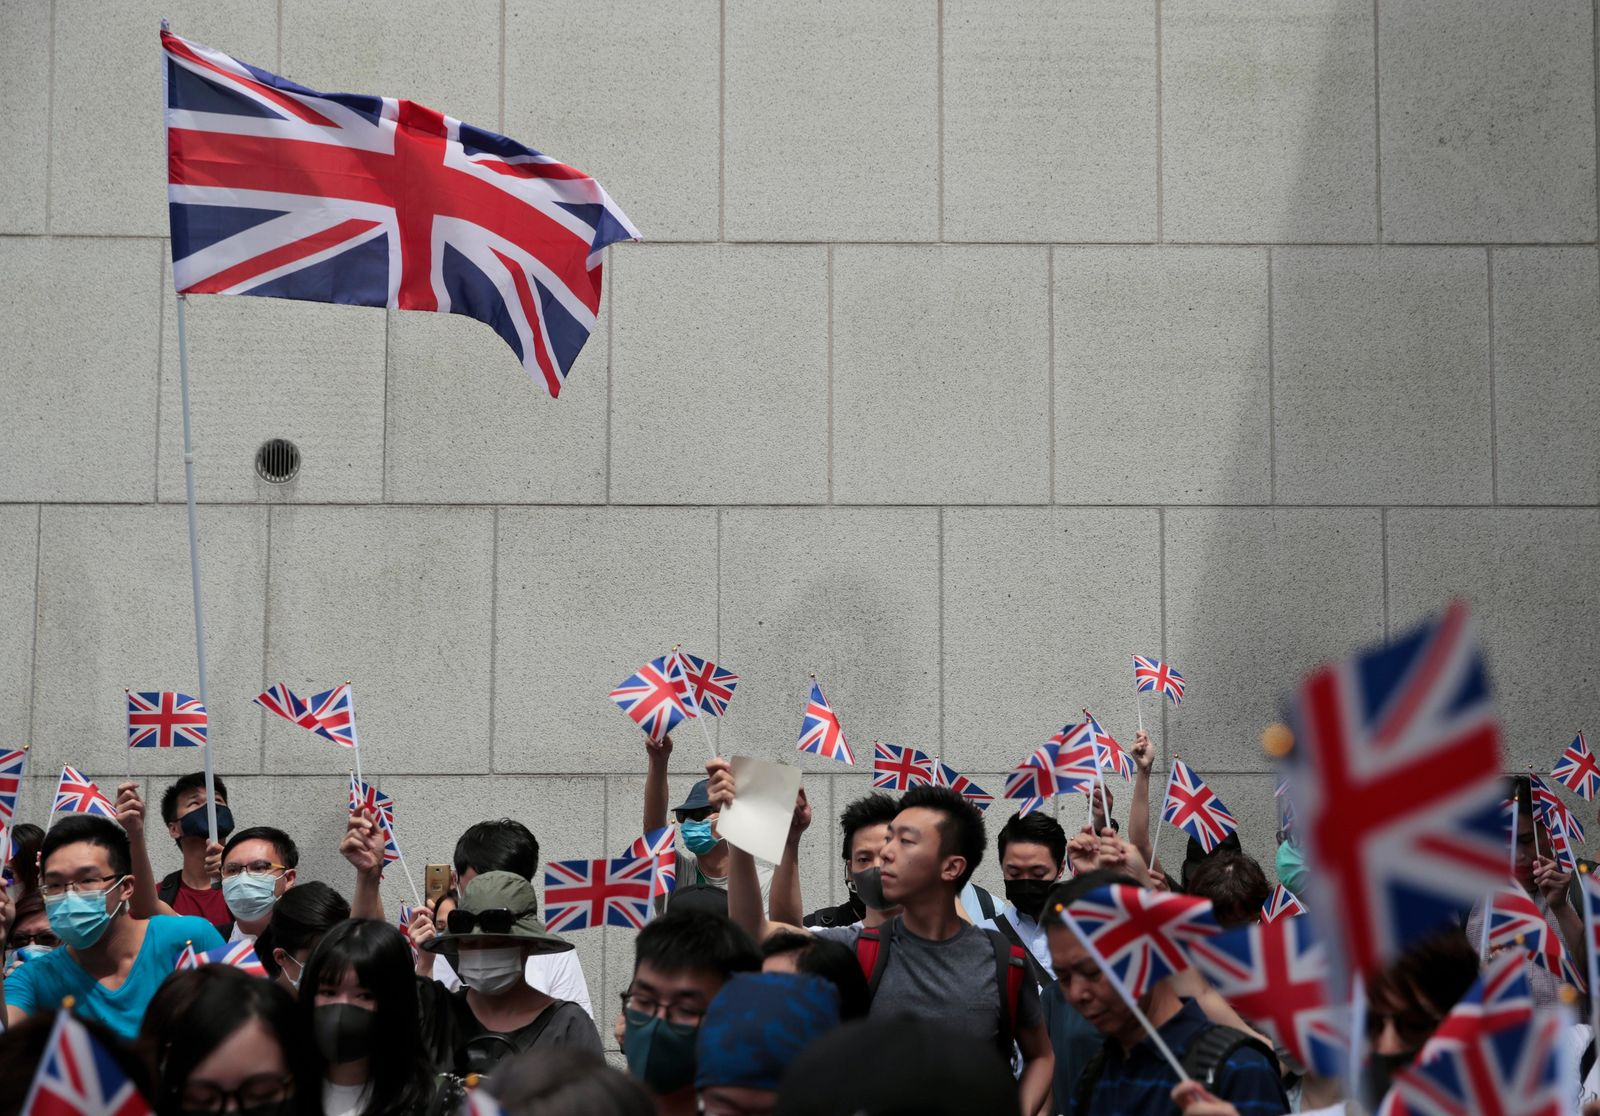 Protestors wave British flags and participate in a peaceful demonstration outside the British Consulate in Hong Kong, Sunday, Sept. 1, 2019.{ } (AP Photo/Jae C. Hong)